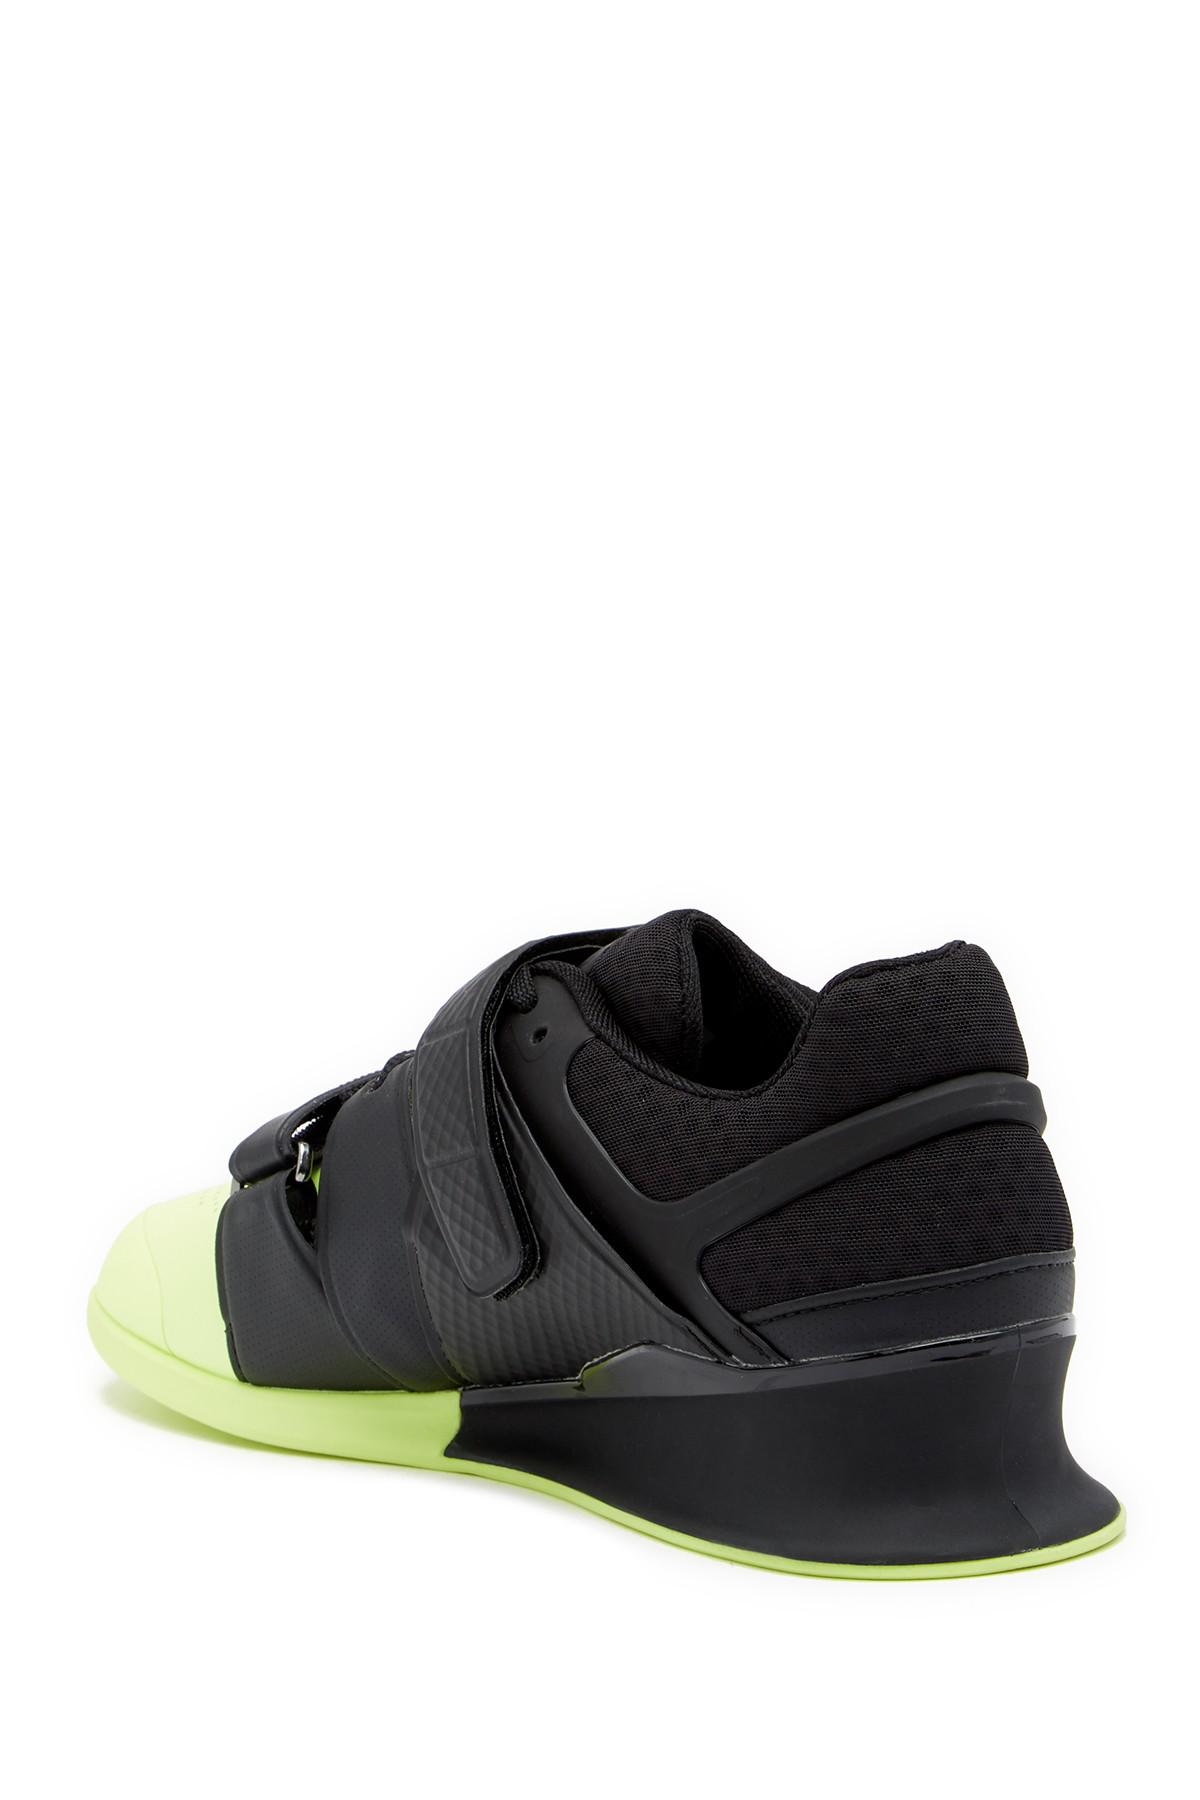 9acf9c62945 Lyst - Reebok Legacy Lifter Weightlifting Shoe in Black for Men